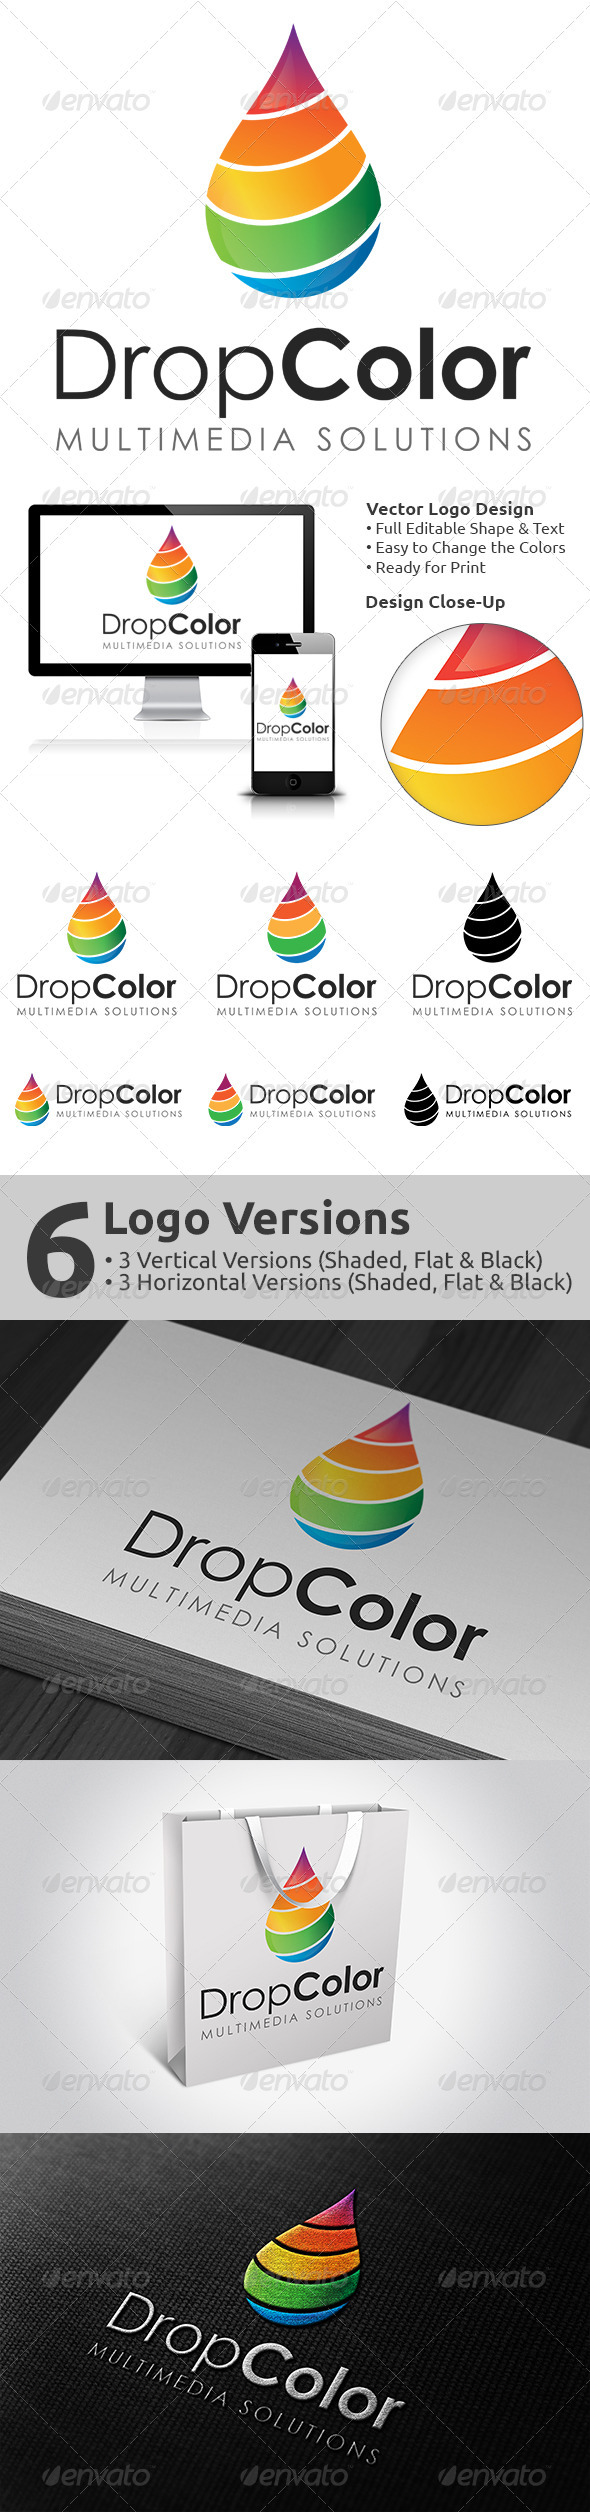 GraphicRiver DropColor Logo Design 3713994